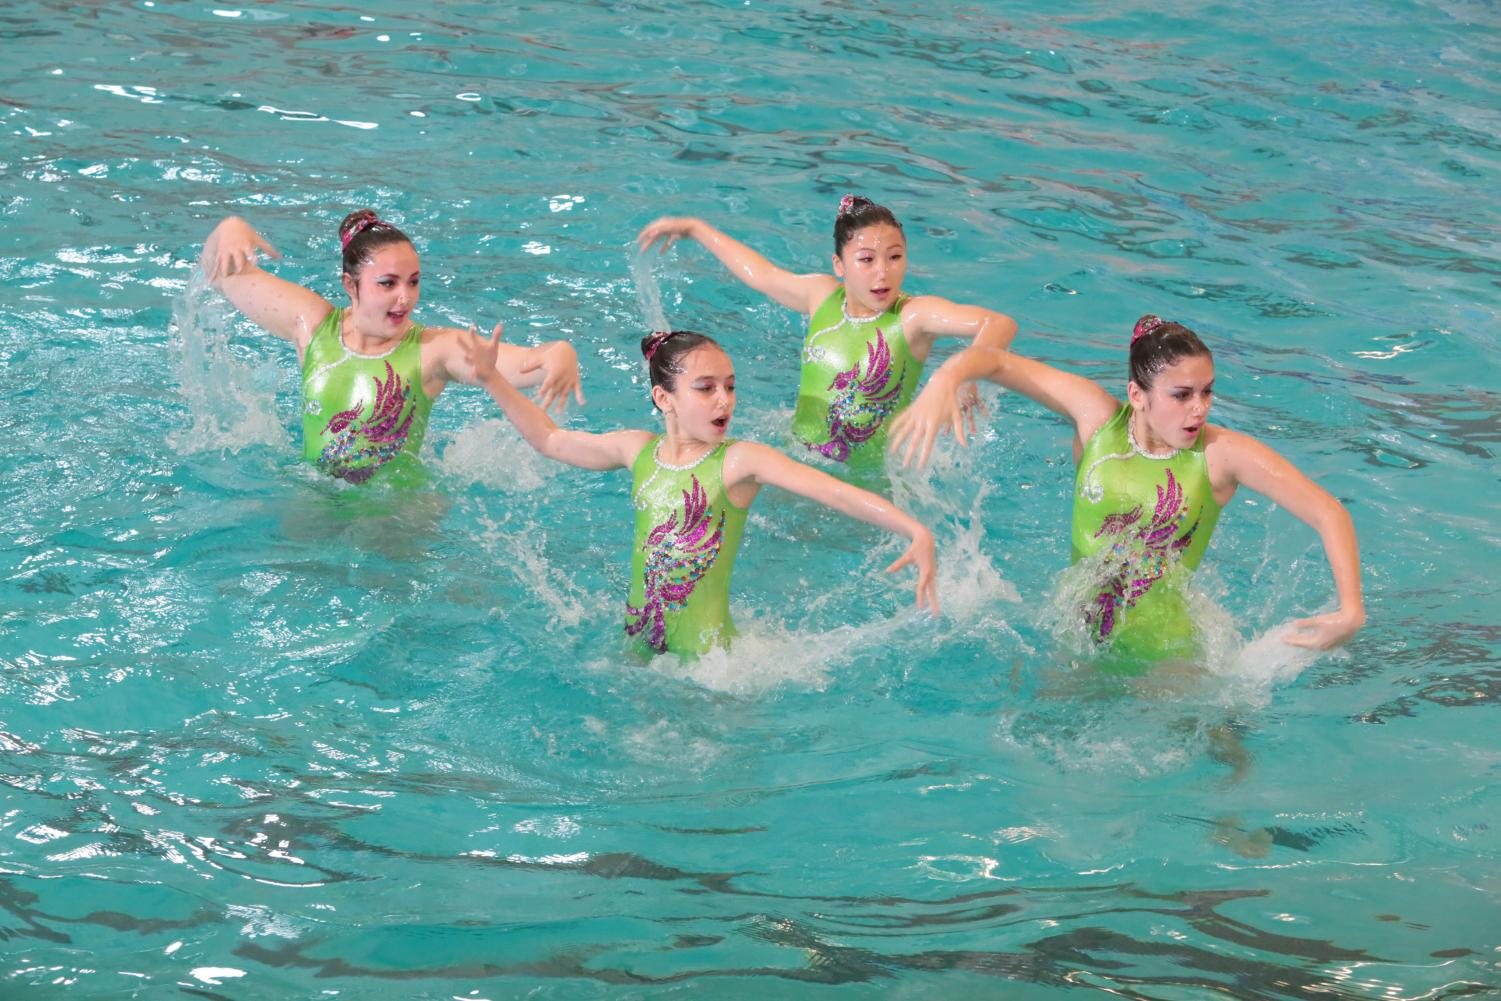 Sophie Altman and members of her synchronized swimming team dance in the pool. Altman joined the team at the Ridgewood YMCA as a freshman and is currently the captain.